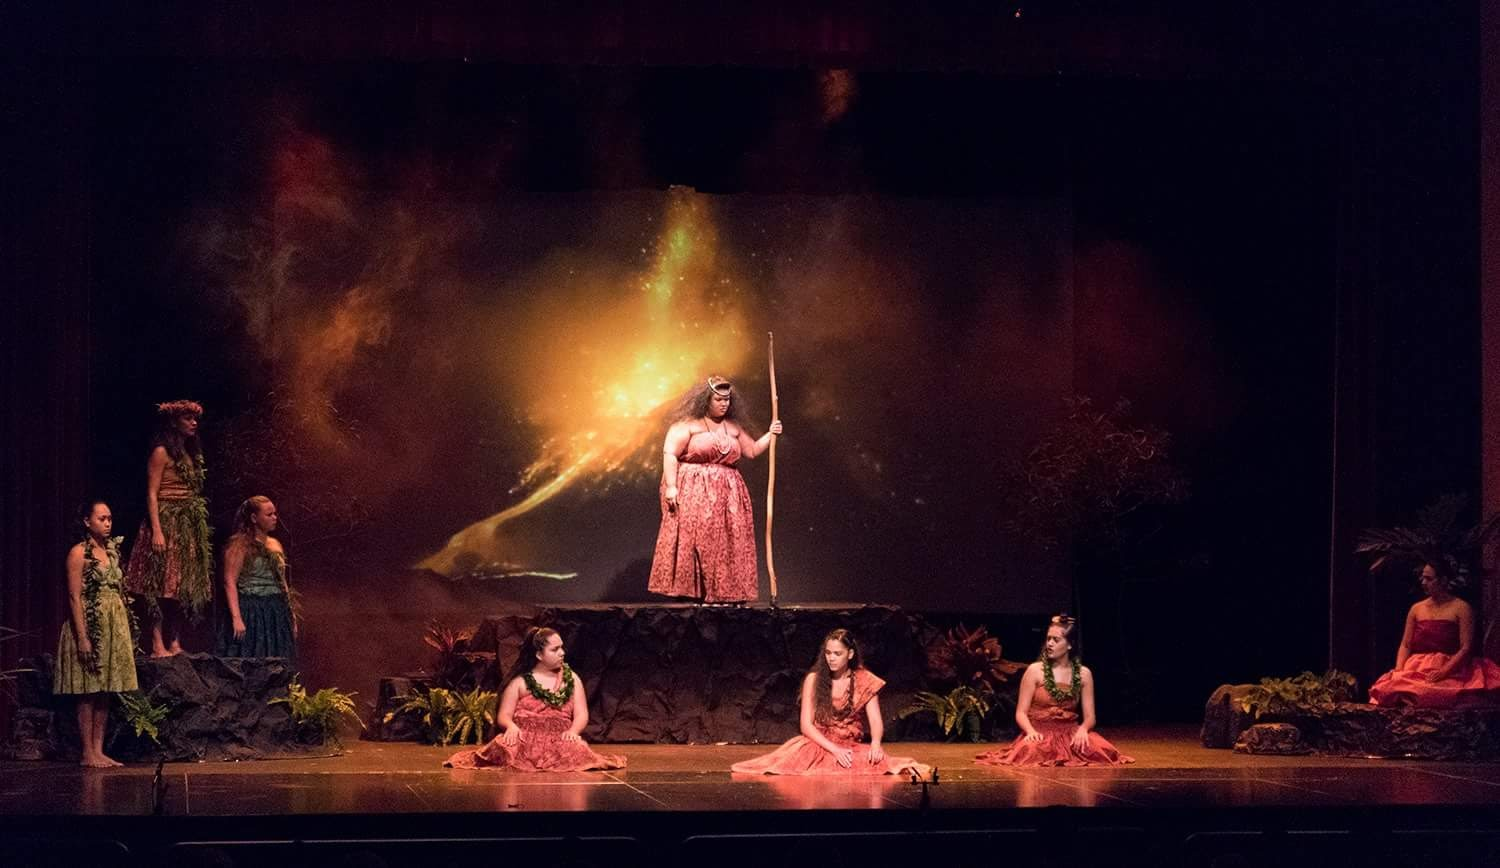 Perfomers on stage in front of a volcano